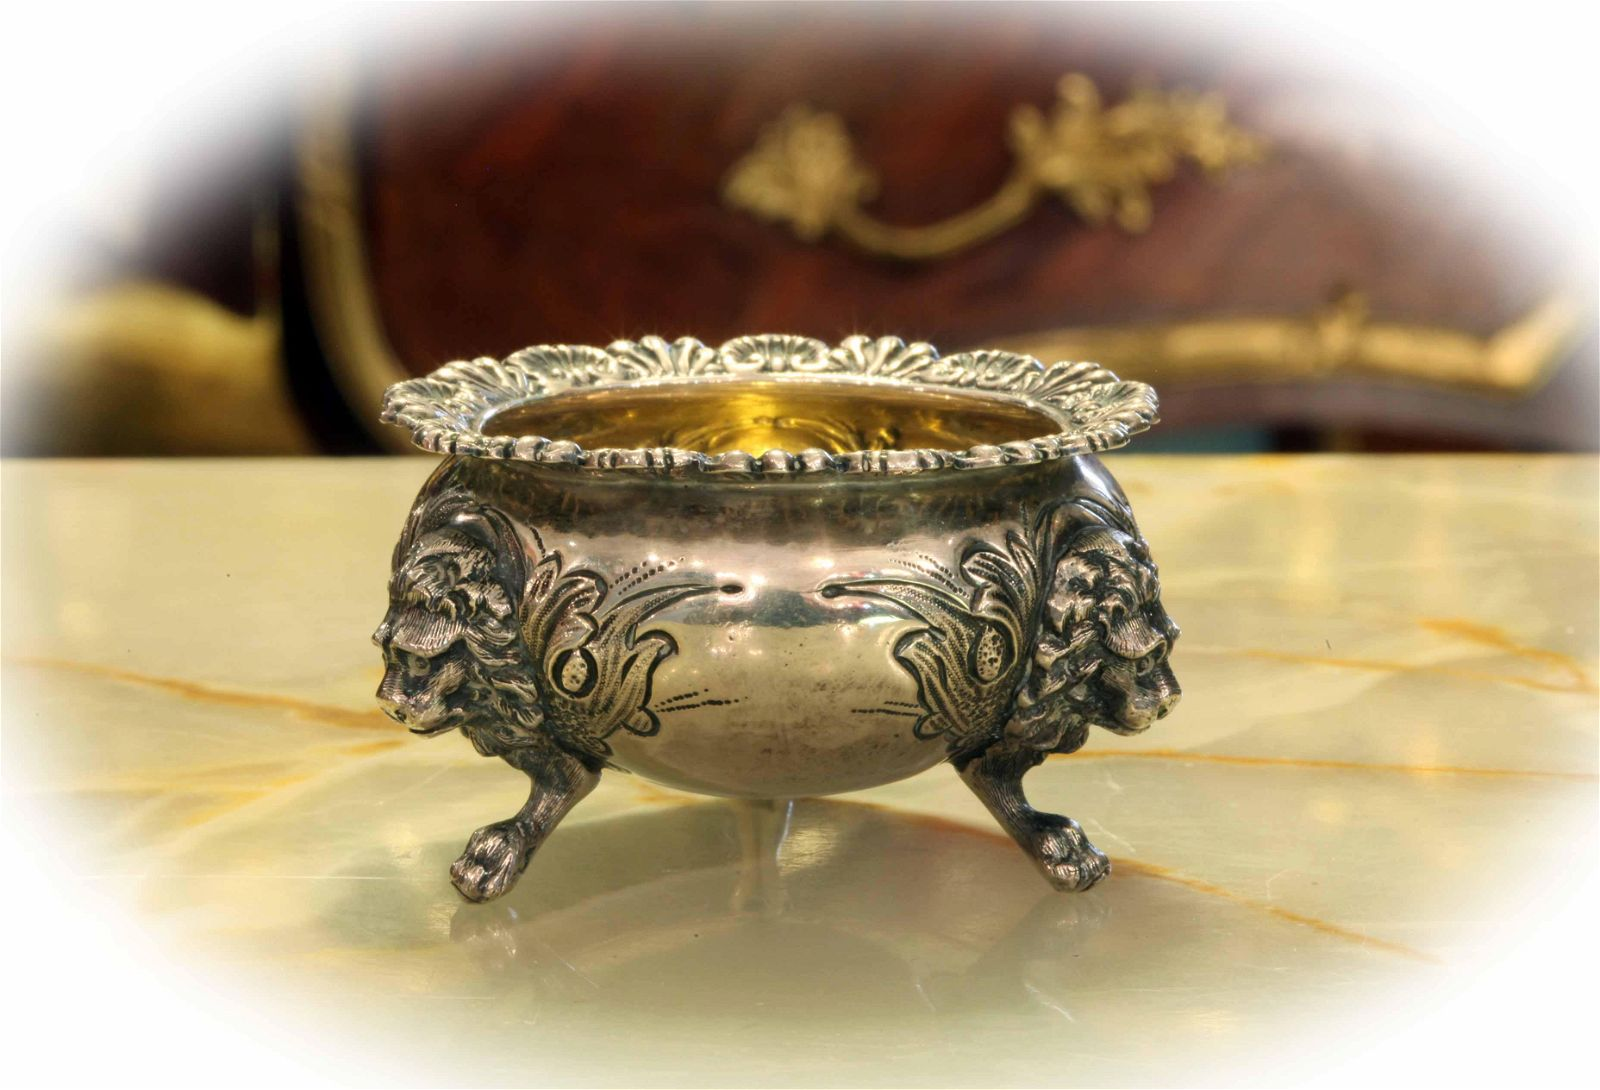 Antique sterling silver bowl with 3 legs, marked